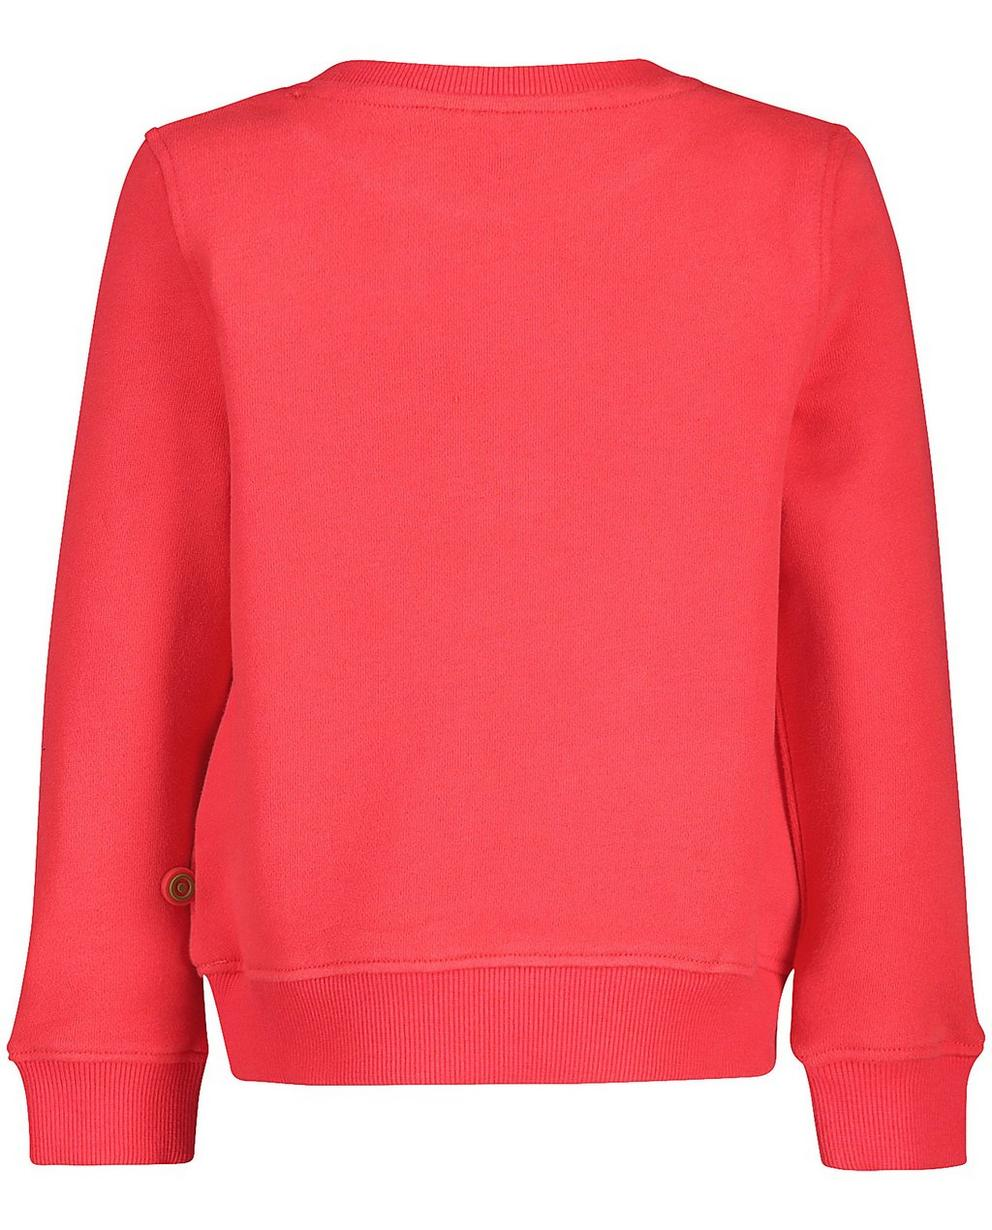 Sweats - rood fel - Sweat framboise